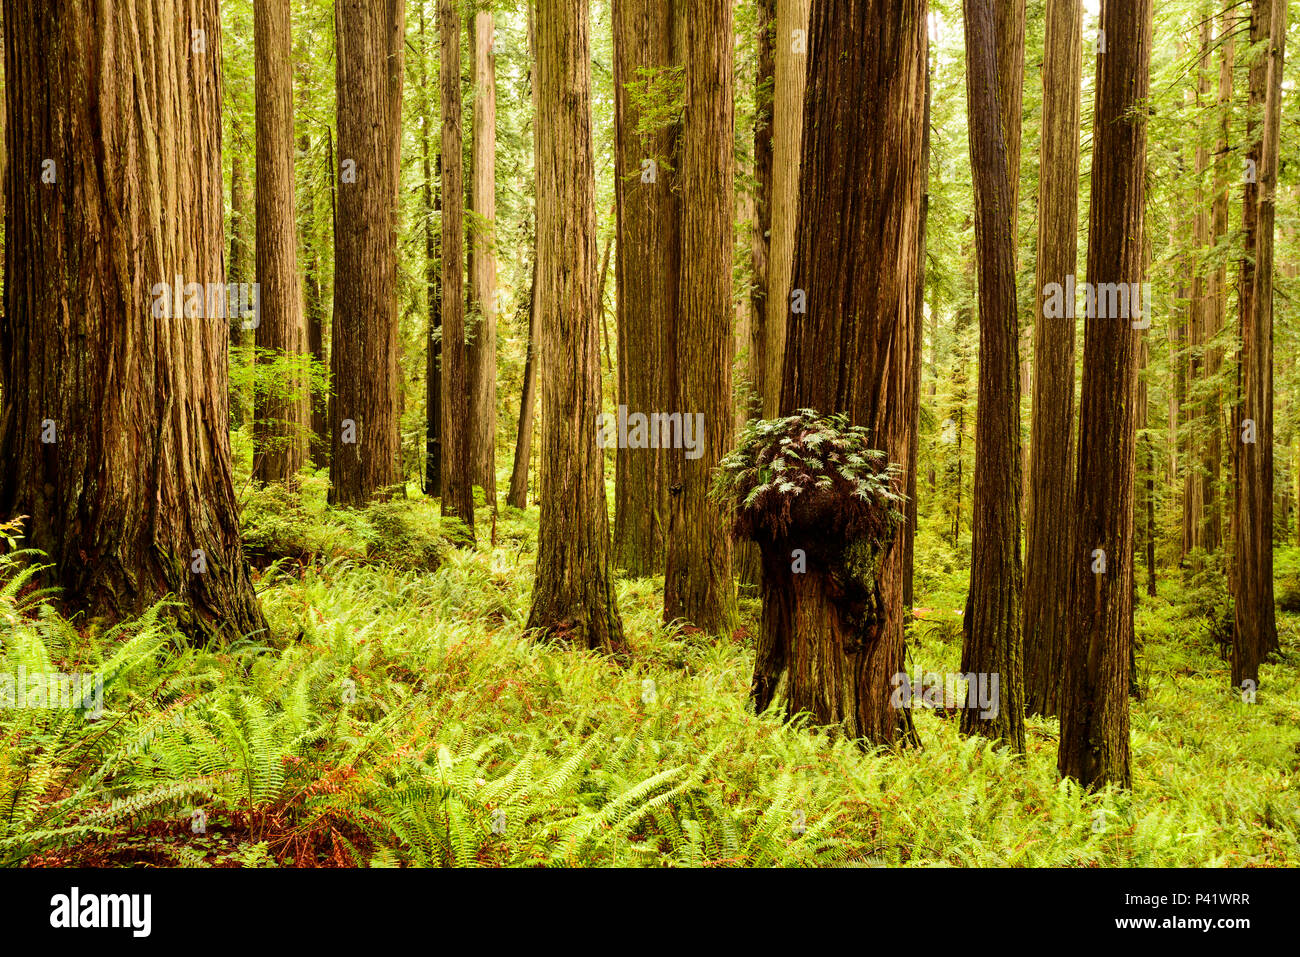 Hiking in the Redwoods in Boy Scout tree trail at Jedediah Smith Redwoods state park in northern California - Stock Image